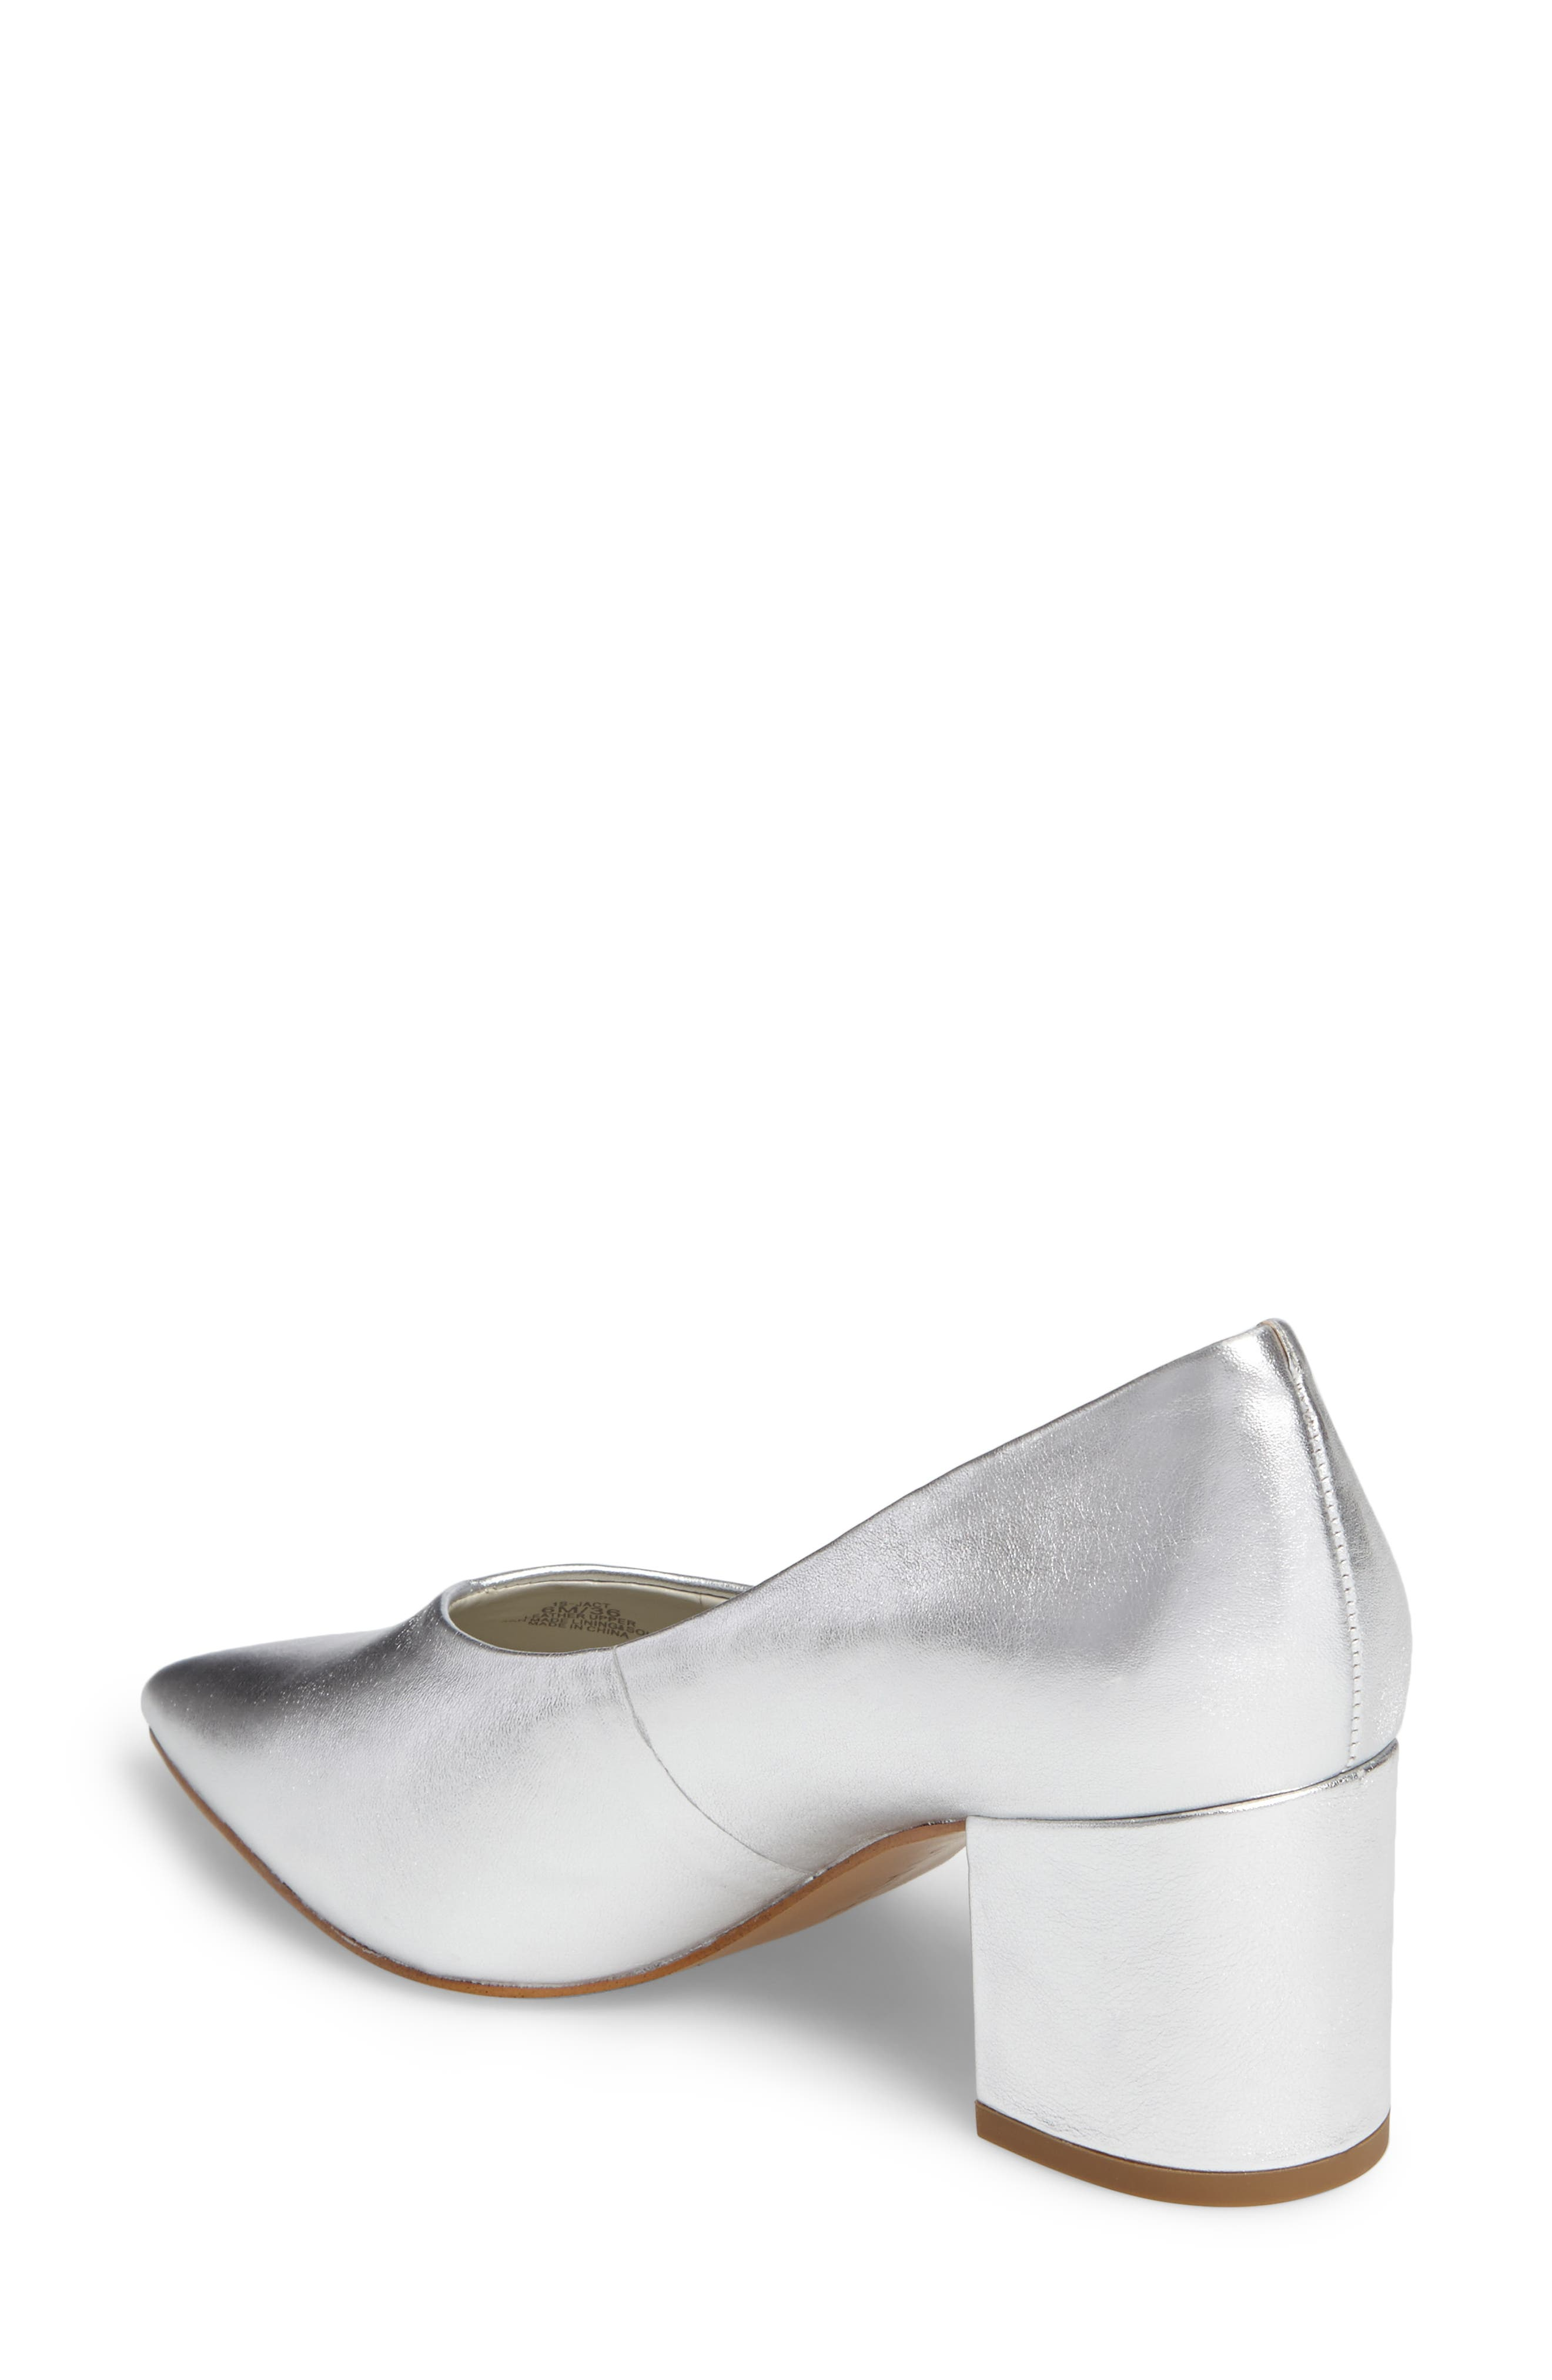 Jact Pointy Toe Pump,                             Alternate thumbnail 2, color,                             Bright Silver Leather